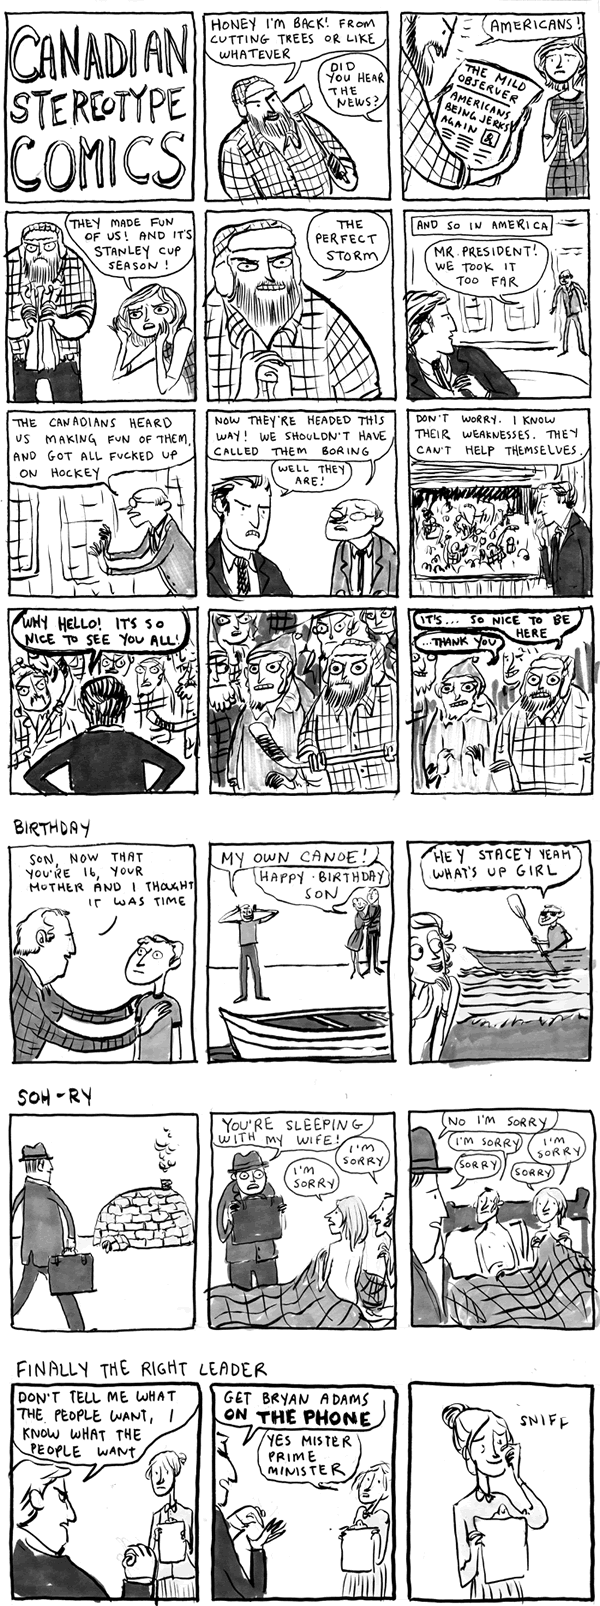 canadian stereotype comics